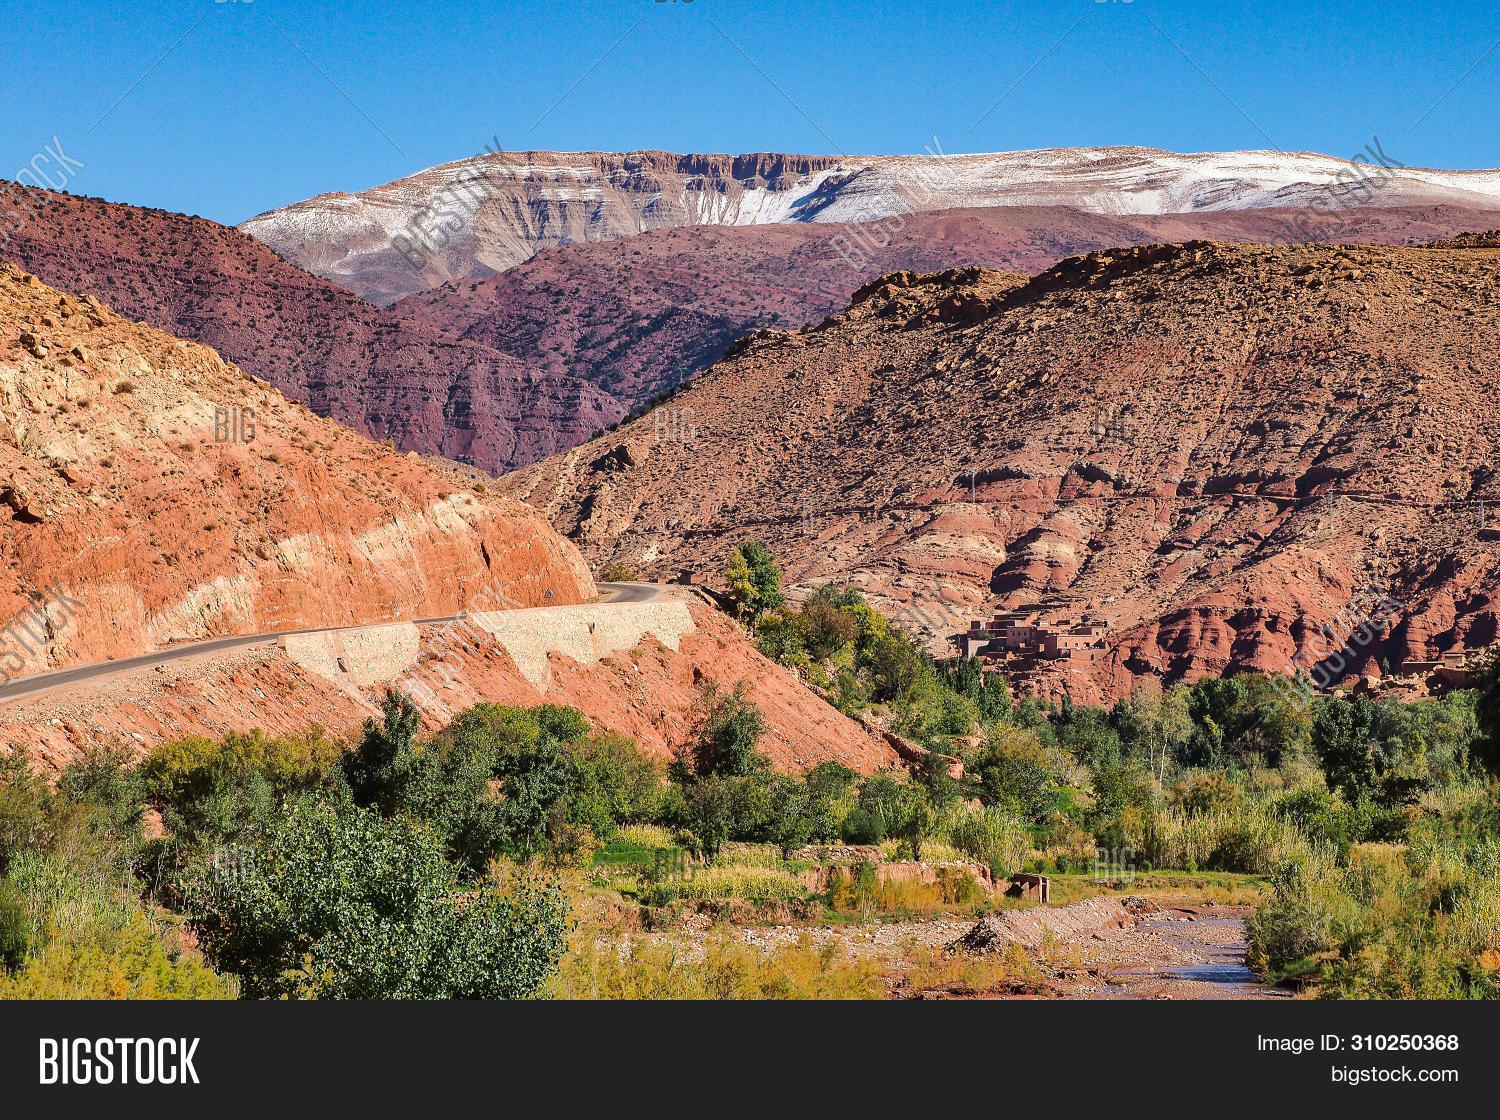 Landscape Of The Atlas Mountains In Morocco In Africa